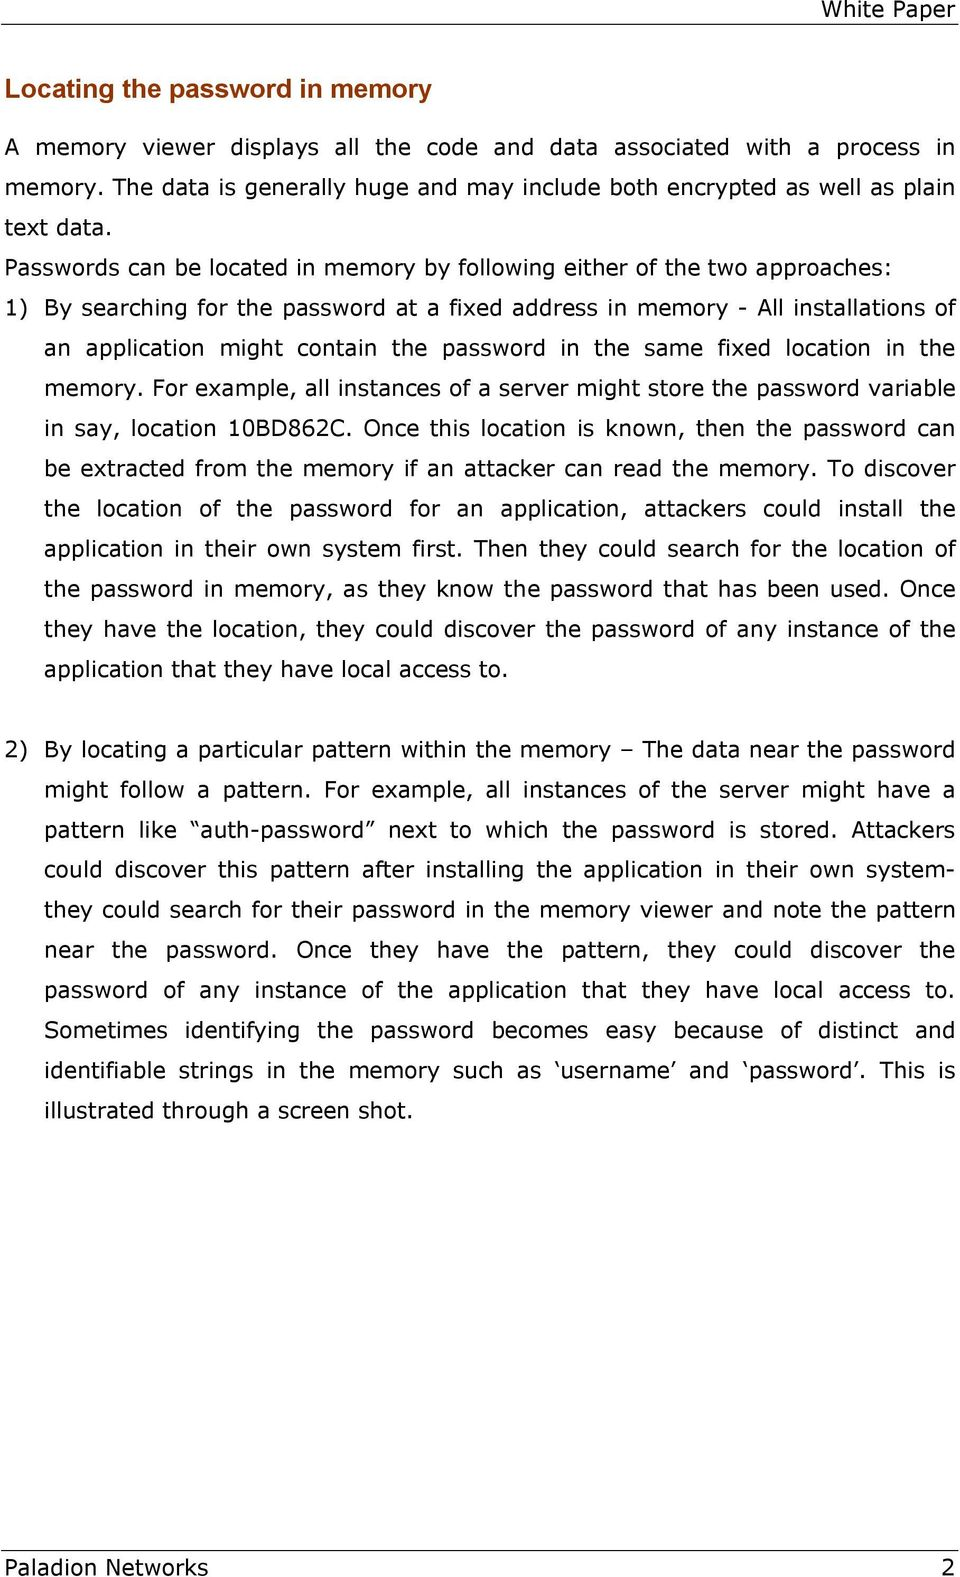 Passwords can be located in memory by following either of the two approaches: 1) By searching for the password at a fixed address in memory - All installations of an application might contain the